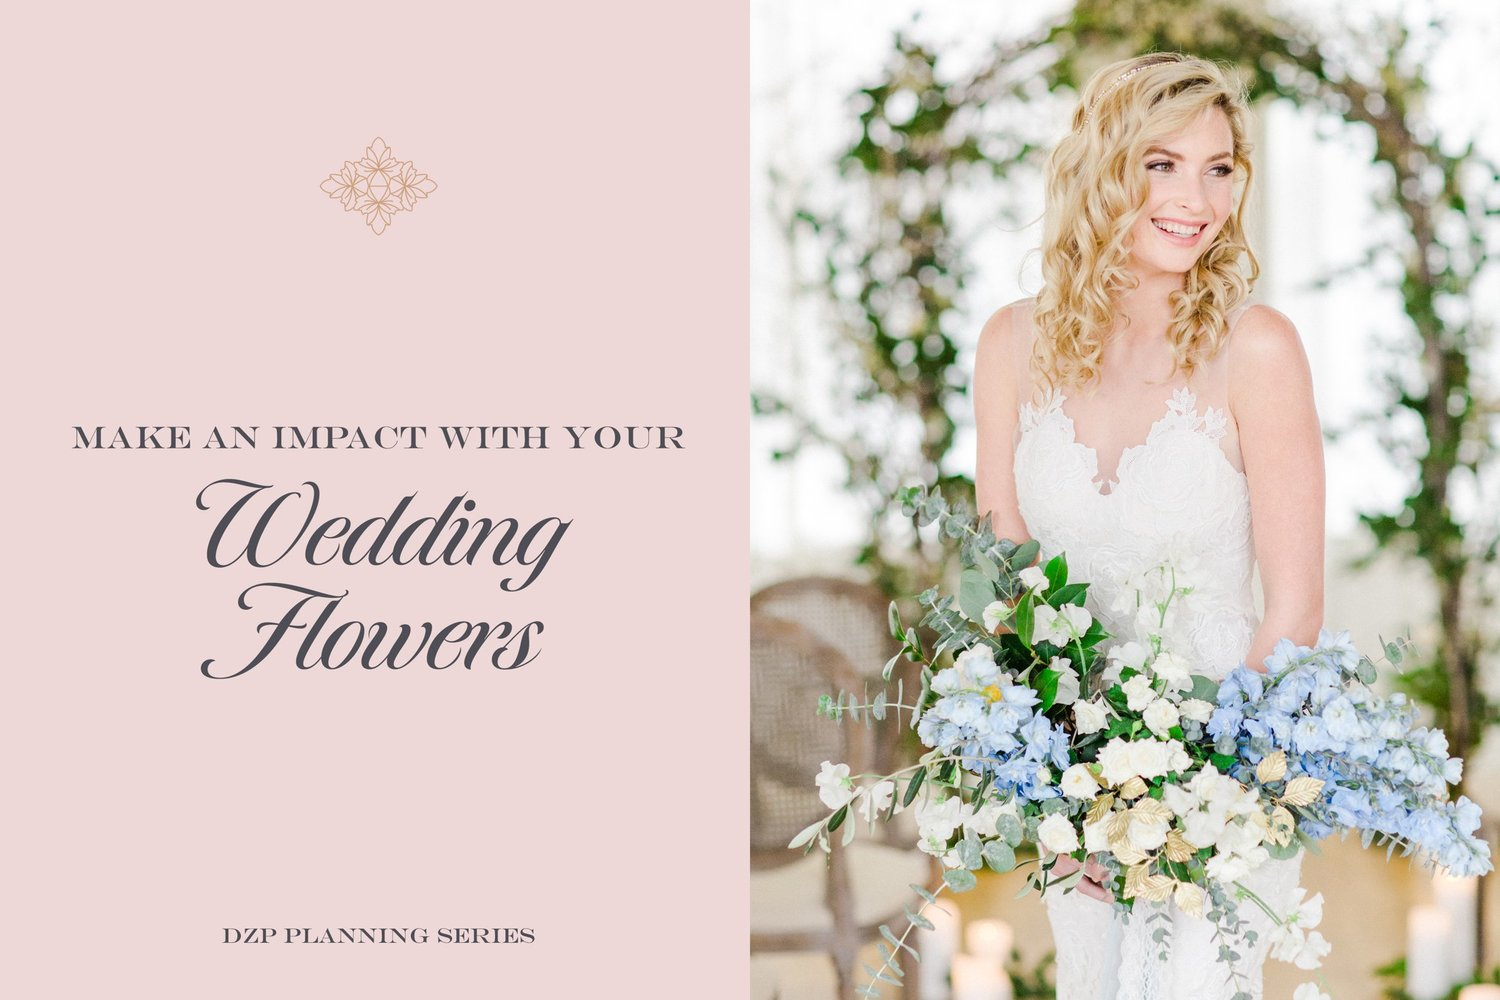 Make An Impact With Your Wedding Flowers